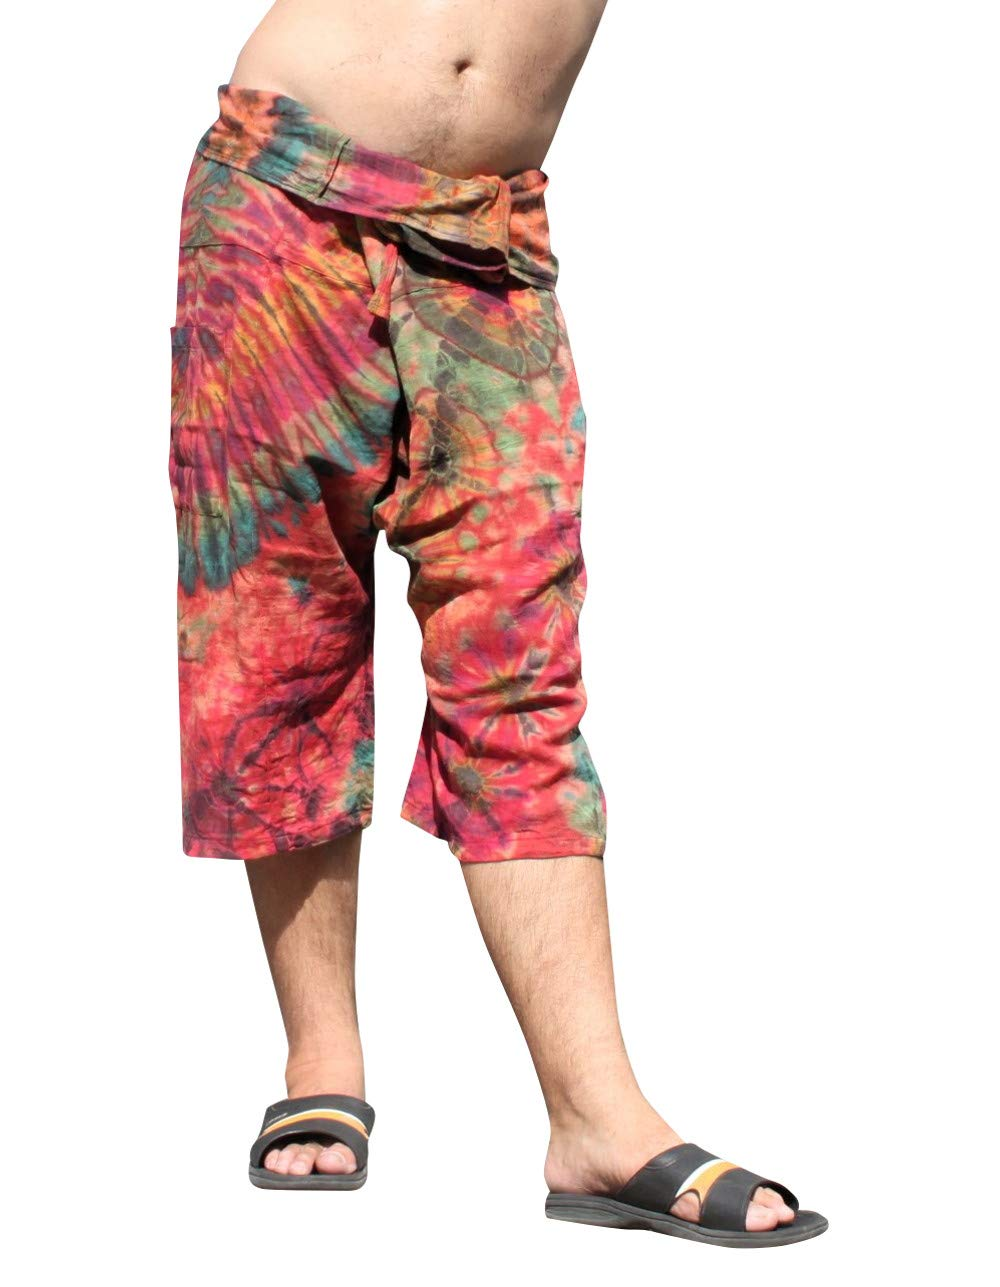 Full Funk Cotton Tie Dyed Natural Colorful Thai Fisherman Wrap 3/4 Leg Pants, Small, Wood Brown Red by Full Funk